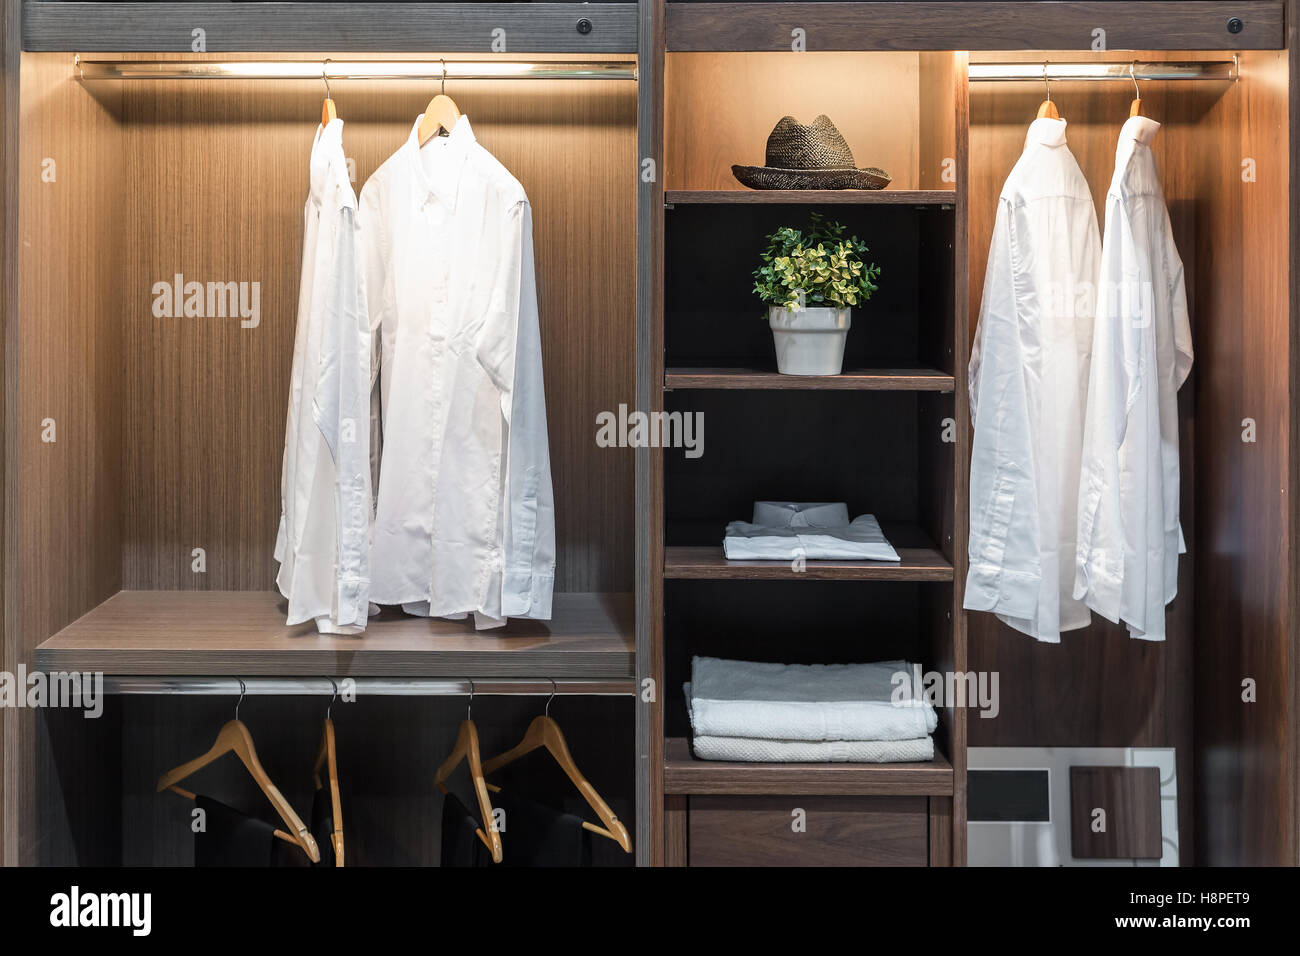 Modern interior wardrobe with shirt, pants, hat and towel in shelf. - Stock Image